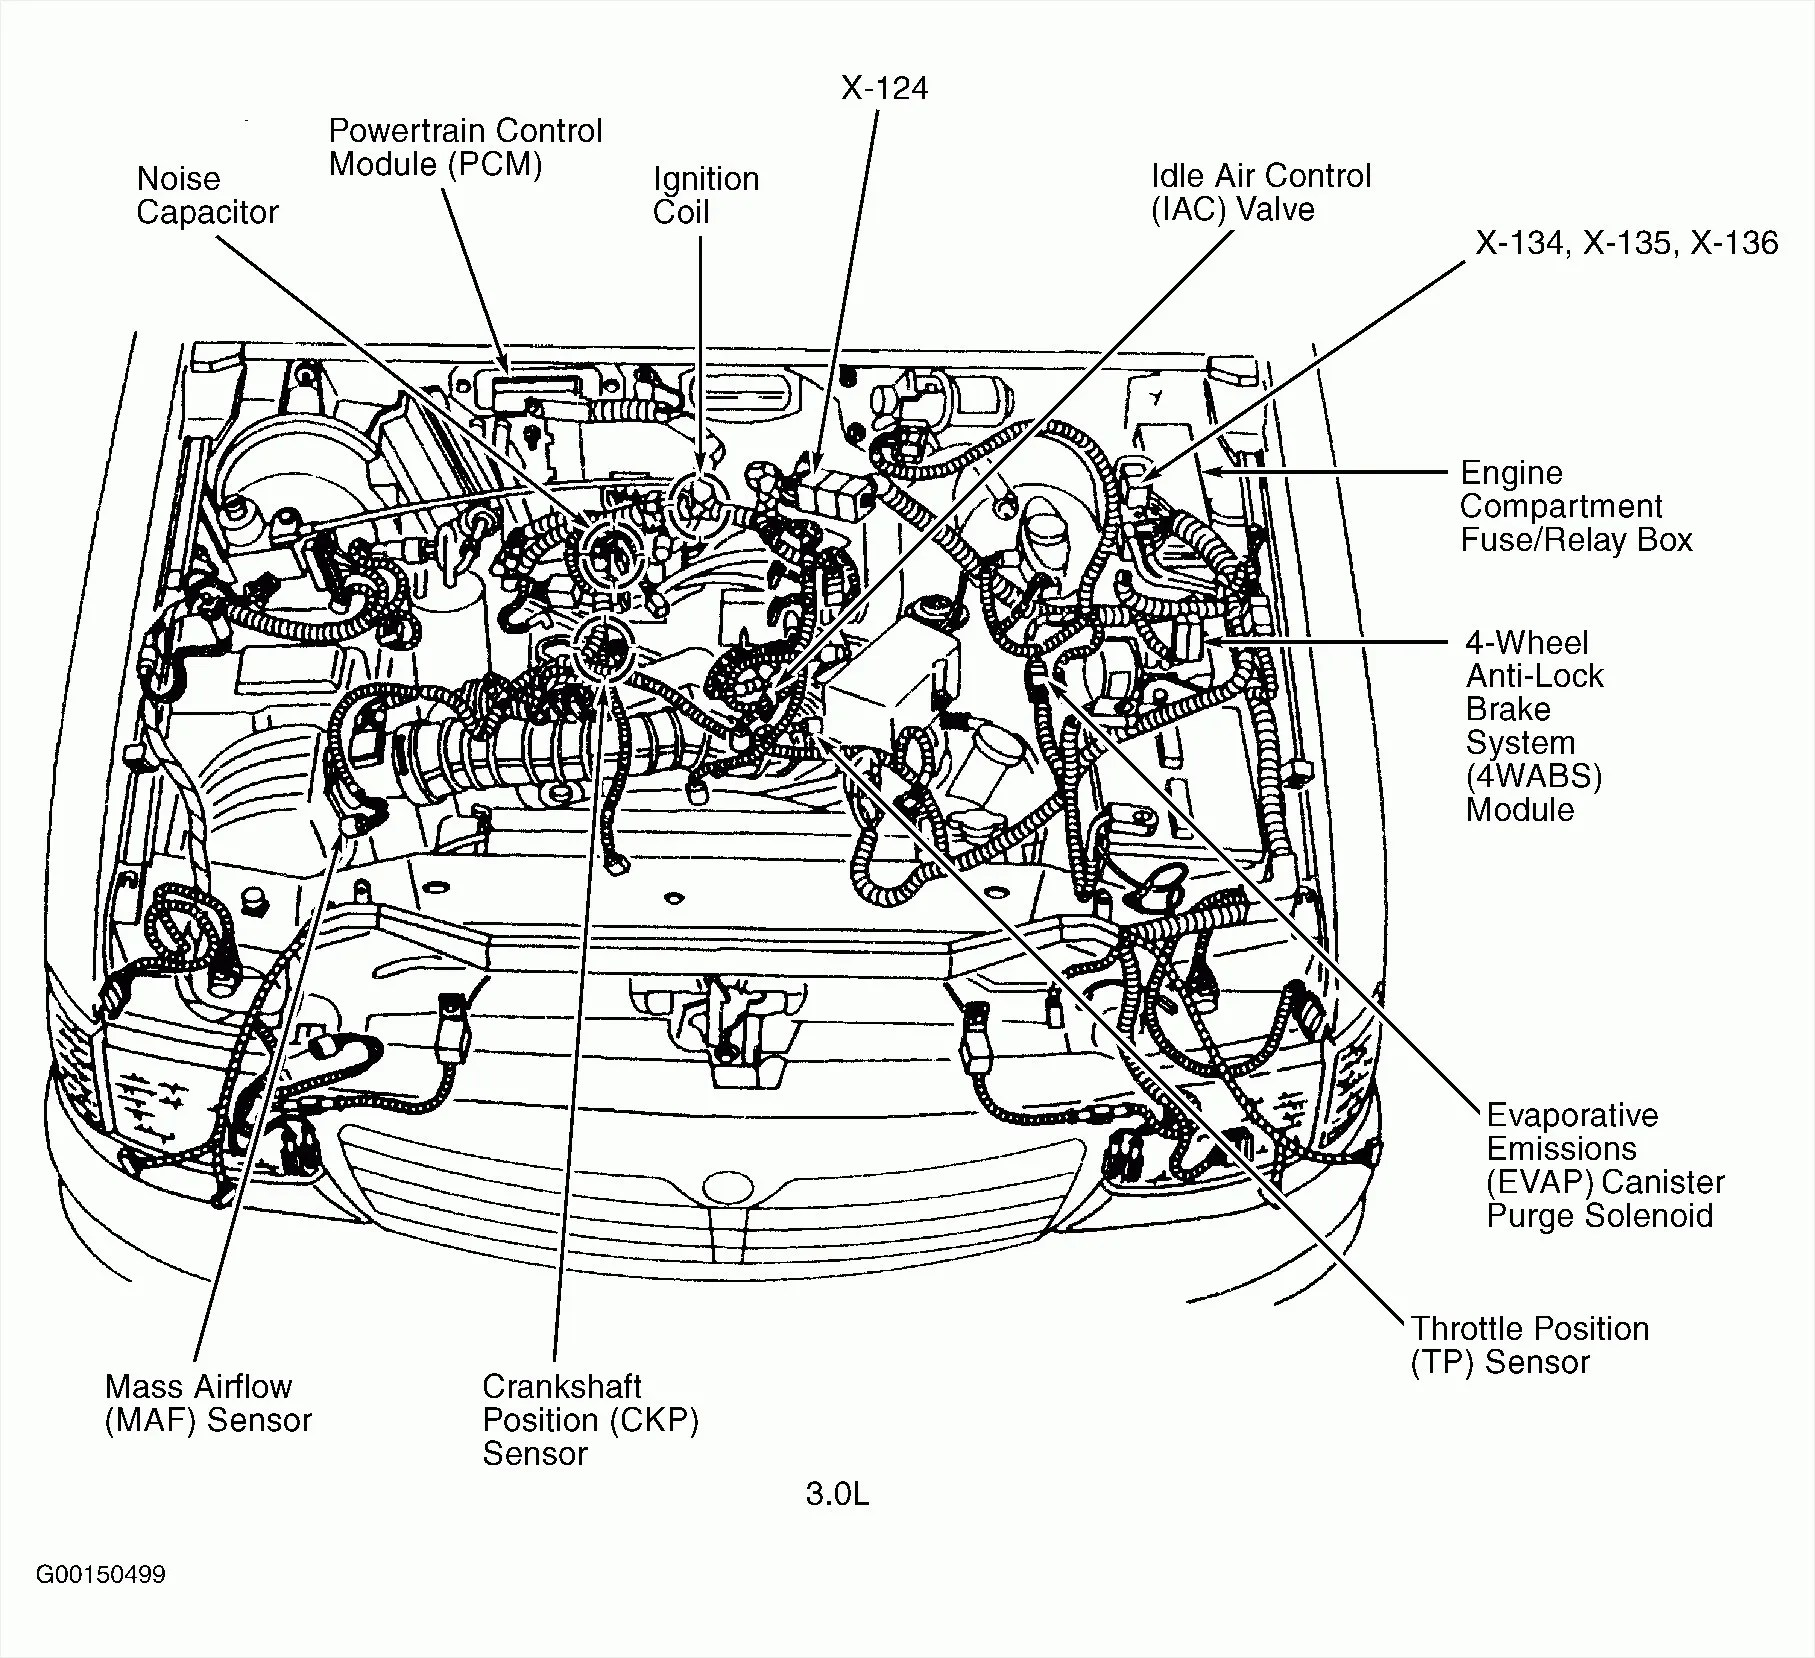 hight resolution of jeep wrangler engine diagram car tuning schema wiring diagrambuick 3 1 engine diagram wiring diagram paper